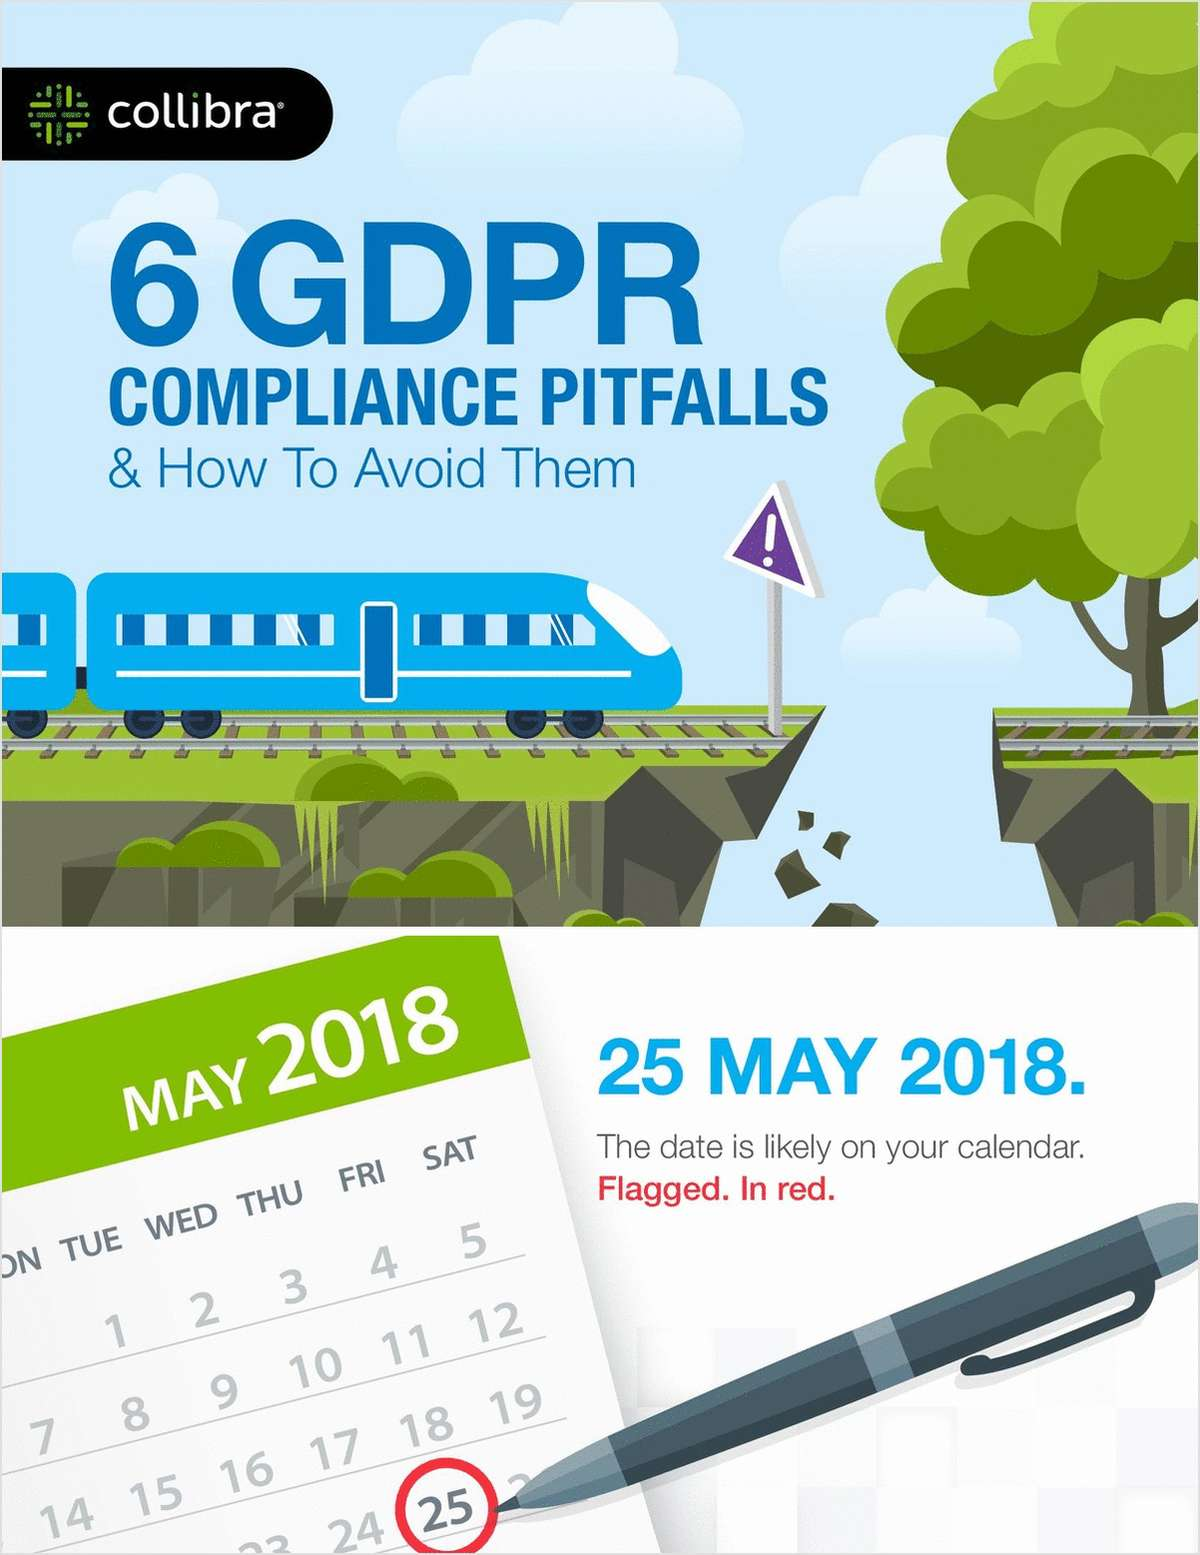 6 GDPR Compliance Pitfalls & How to Avoid Them